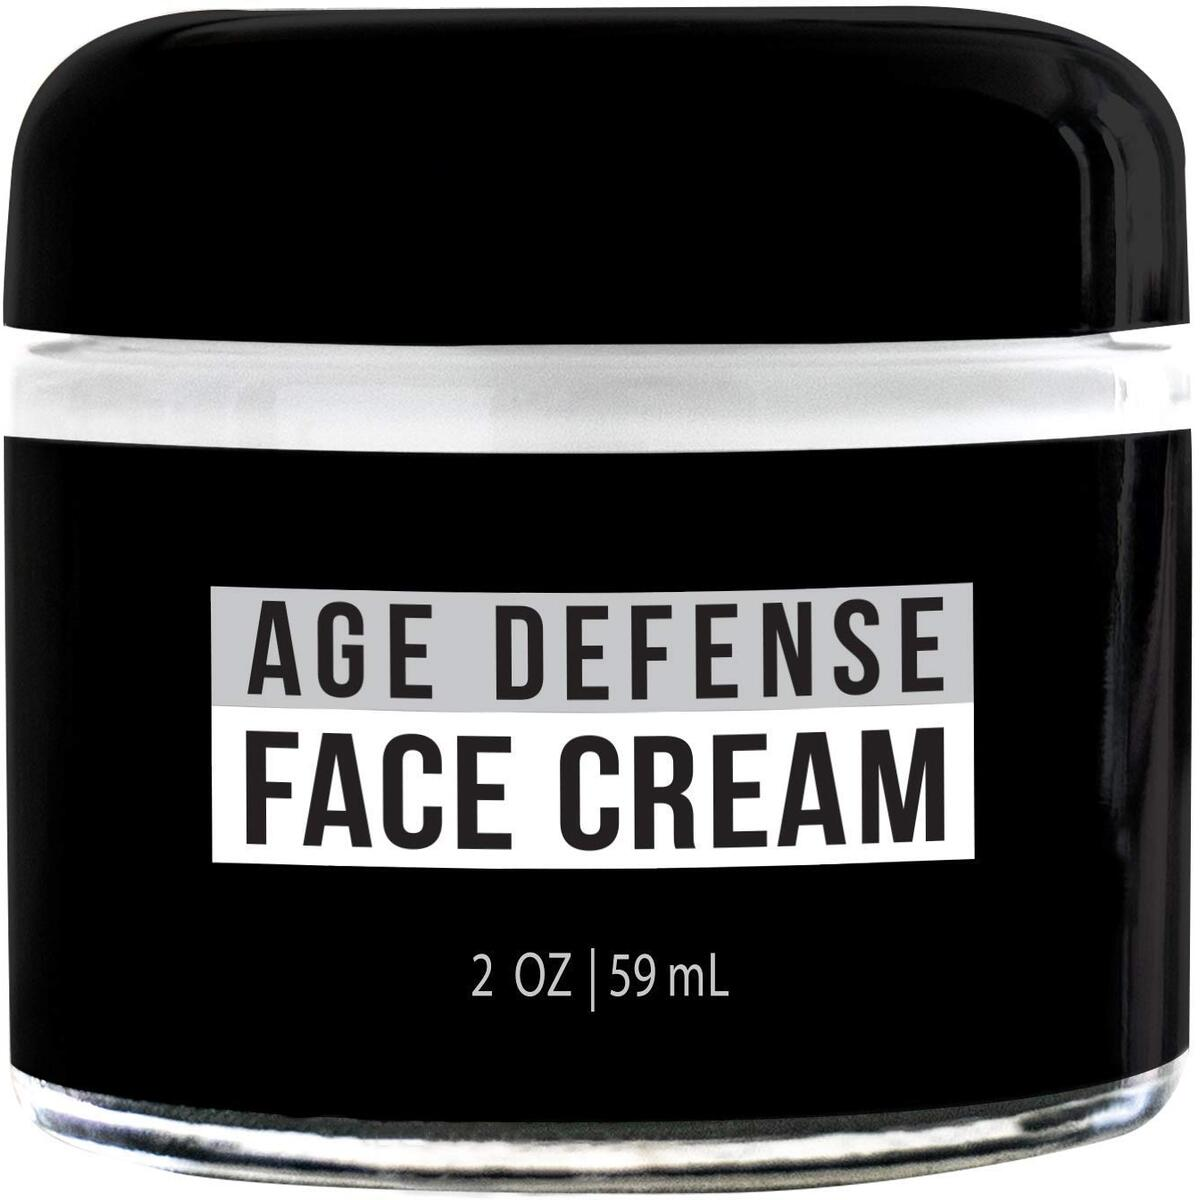 RUGGED & DAPPER Age Defense Face Cream for Men | Fast Action Ultra-Hydrating Day & Night Lotion for Men